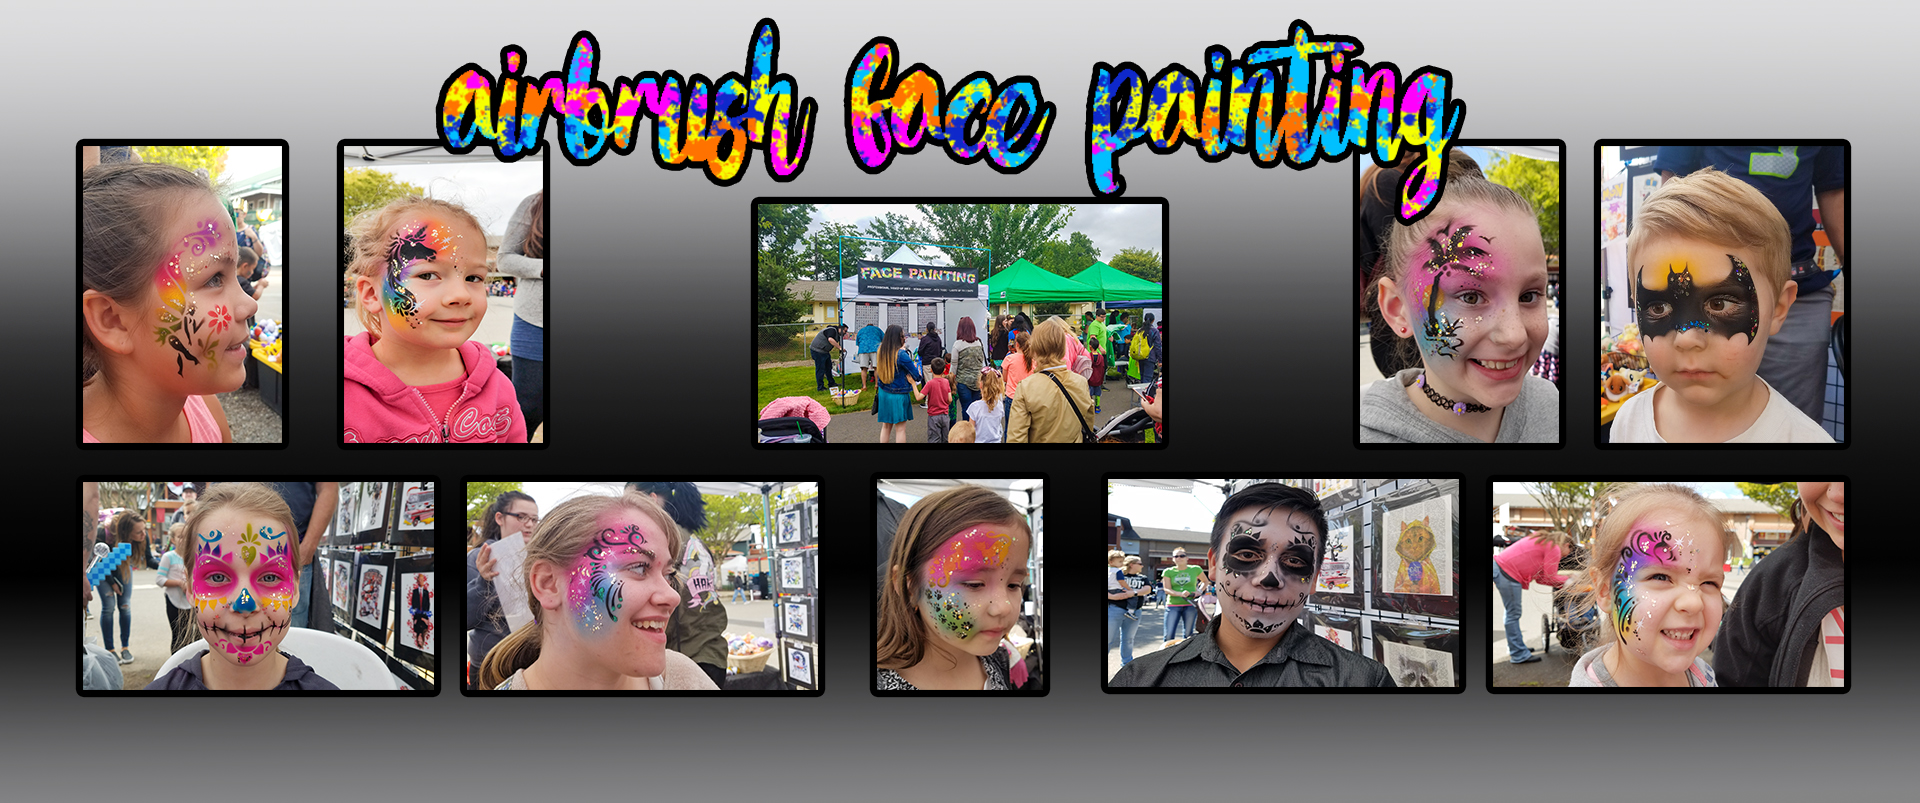 airbrush face painting site 1.jpg